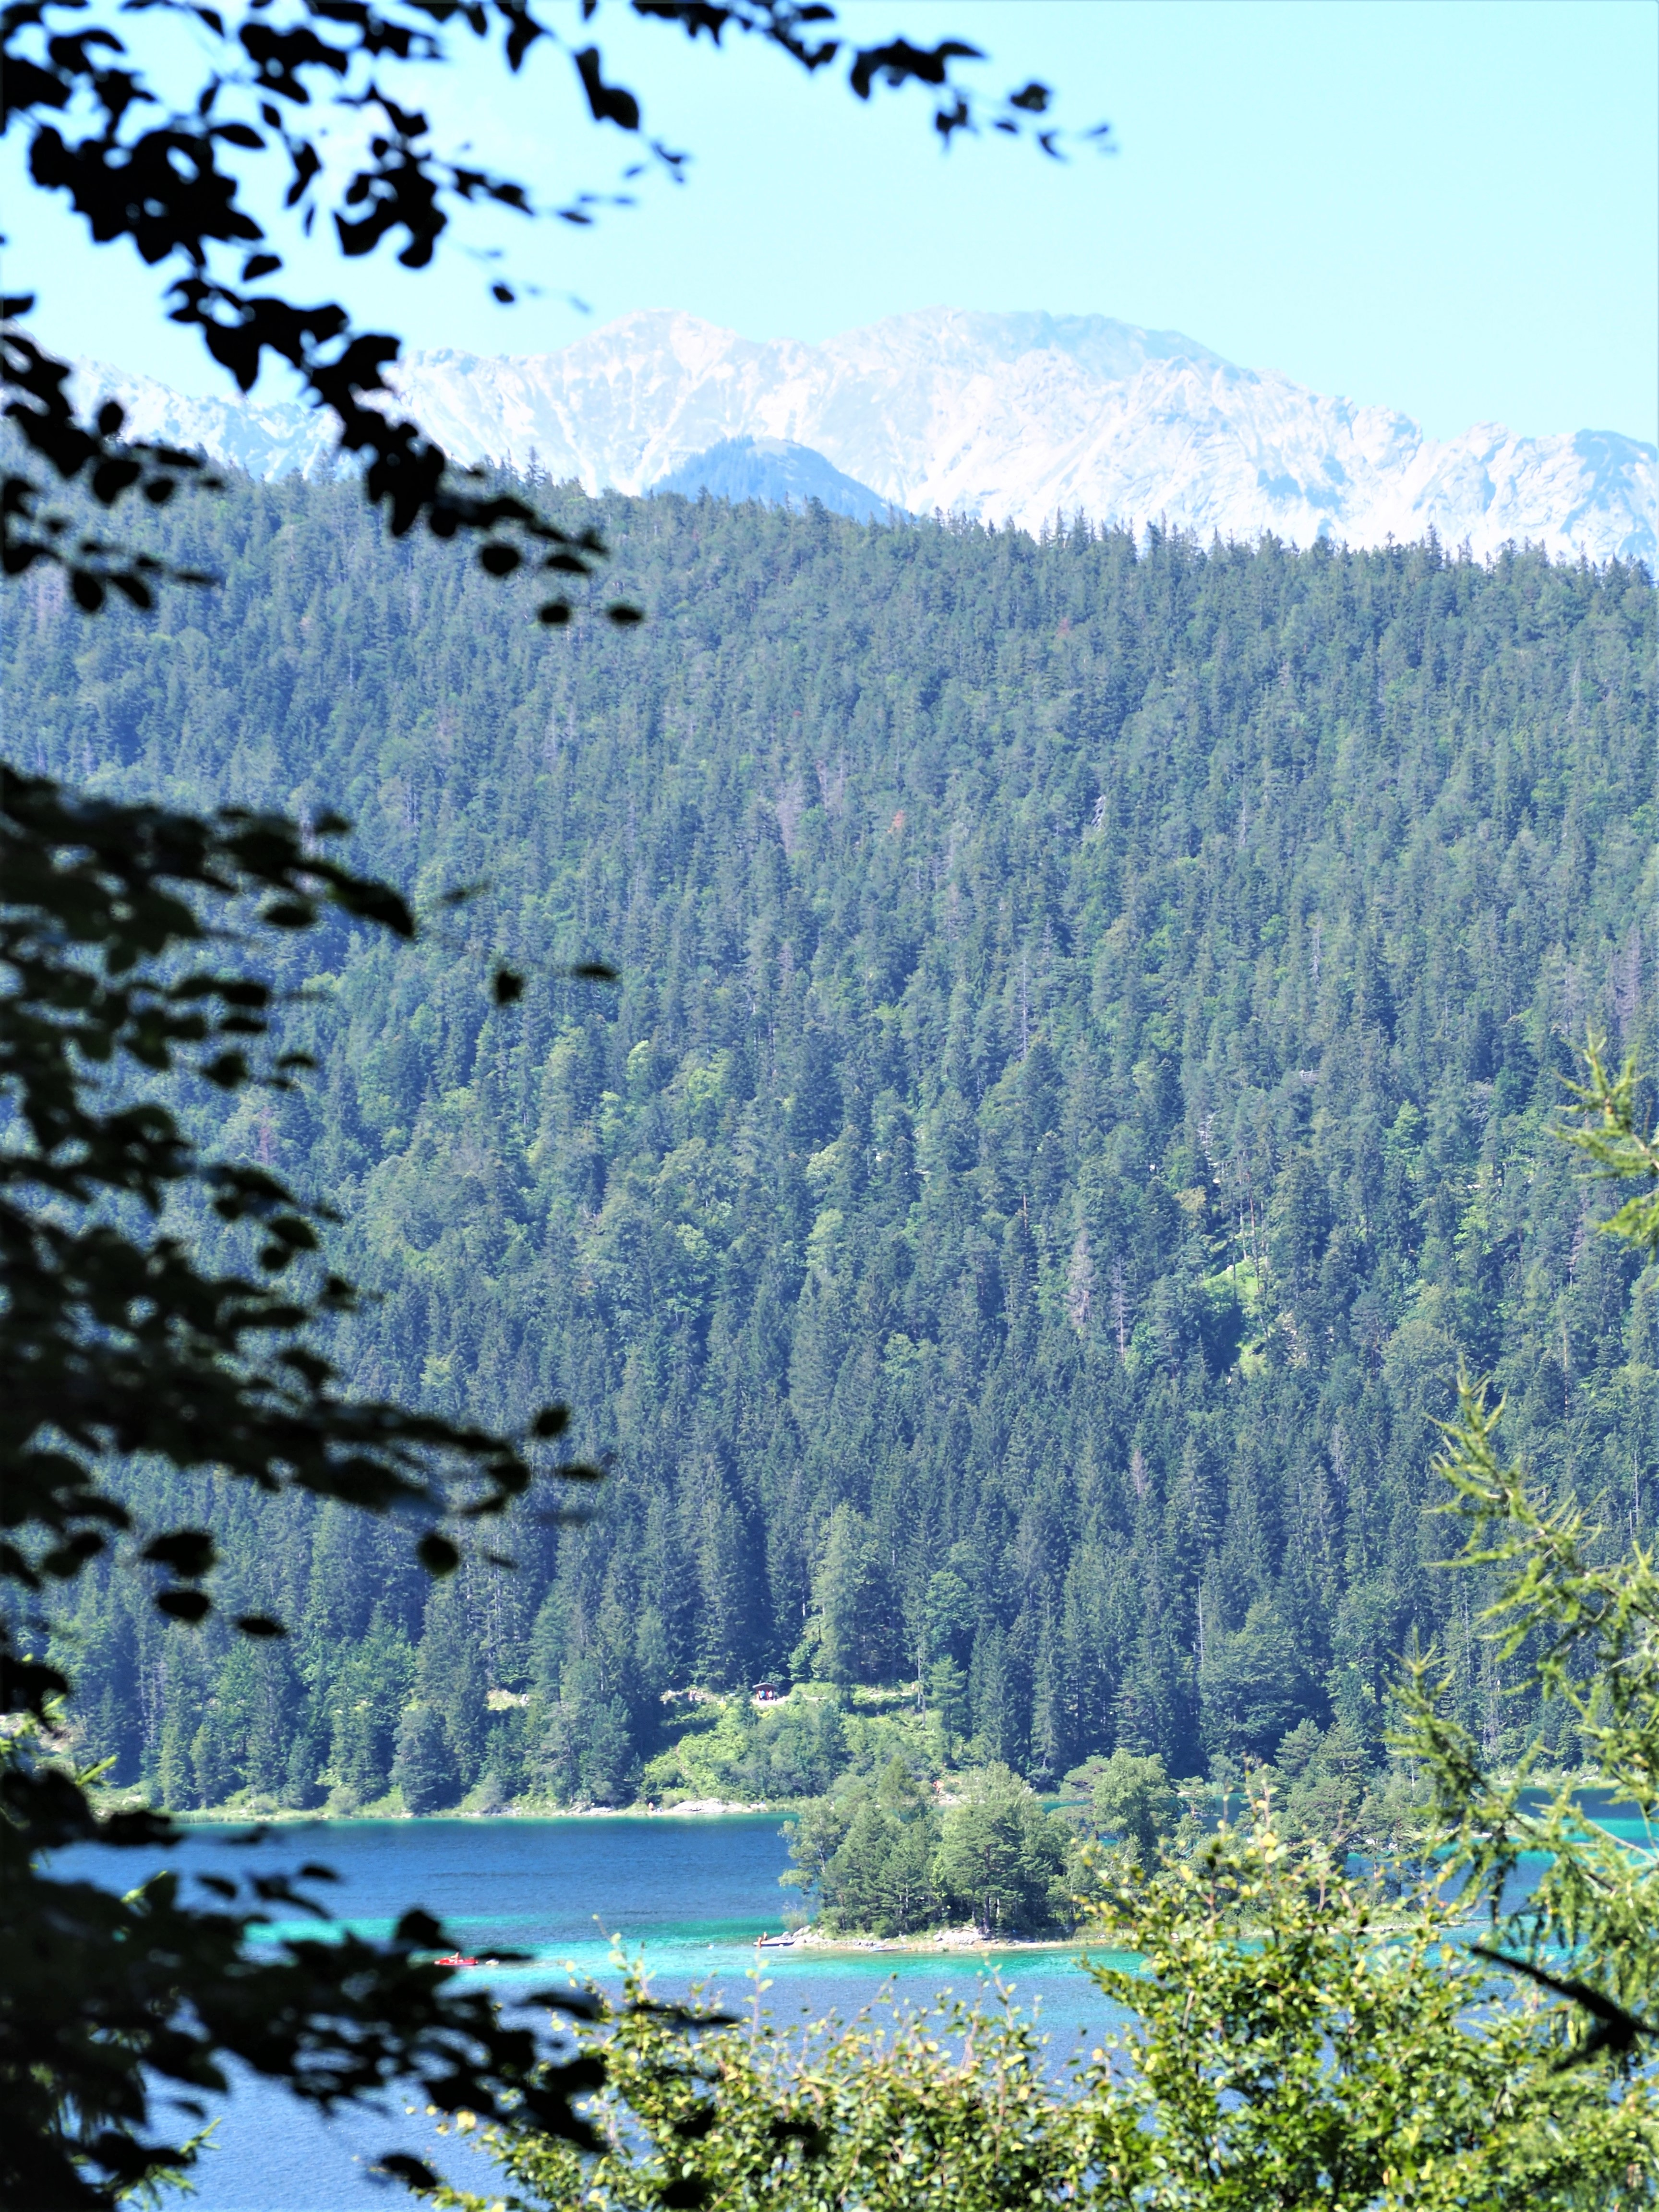 lac-eibsee-clioandco-blog-voyage-allemagne-baviere-proche-zugspitze-ilots-caraibes.